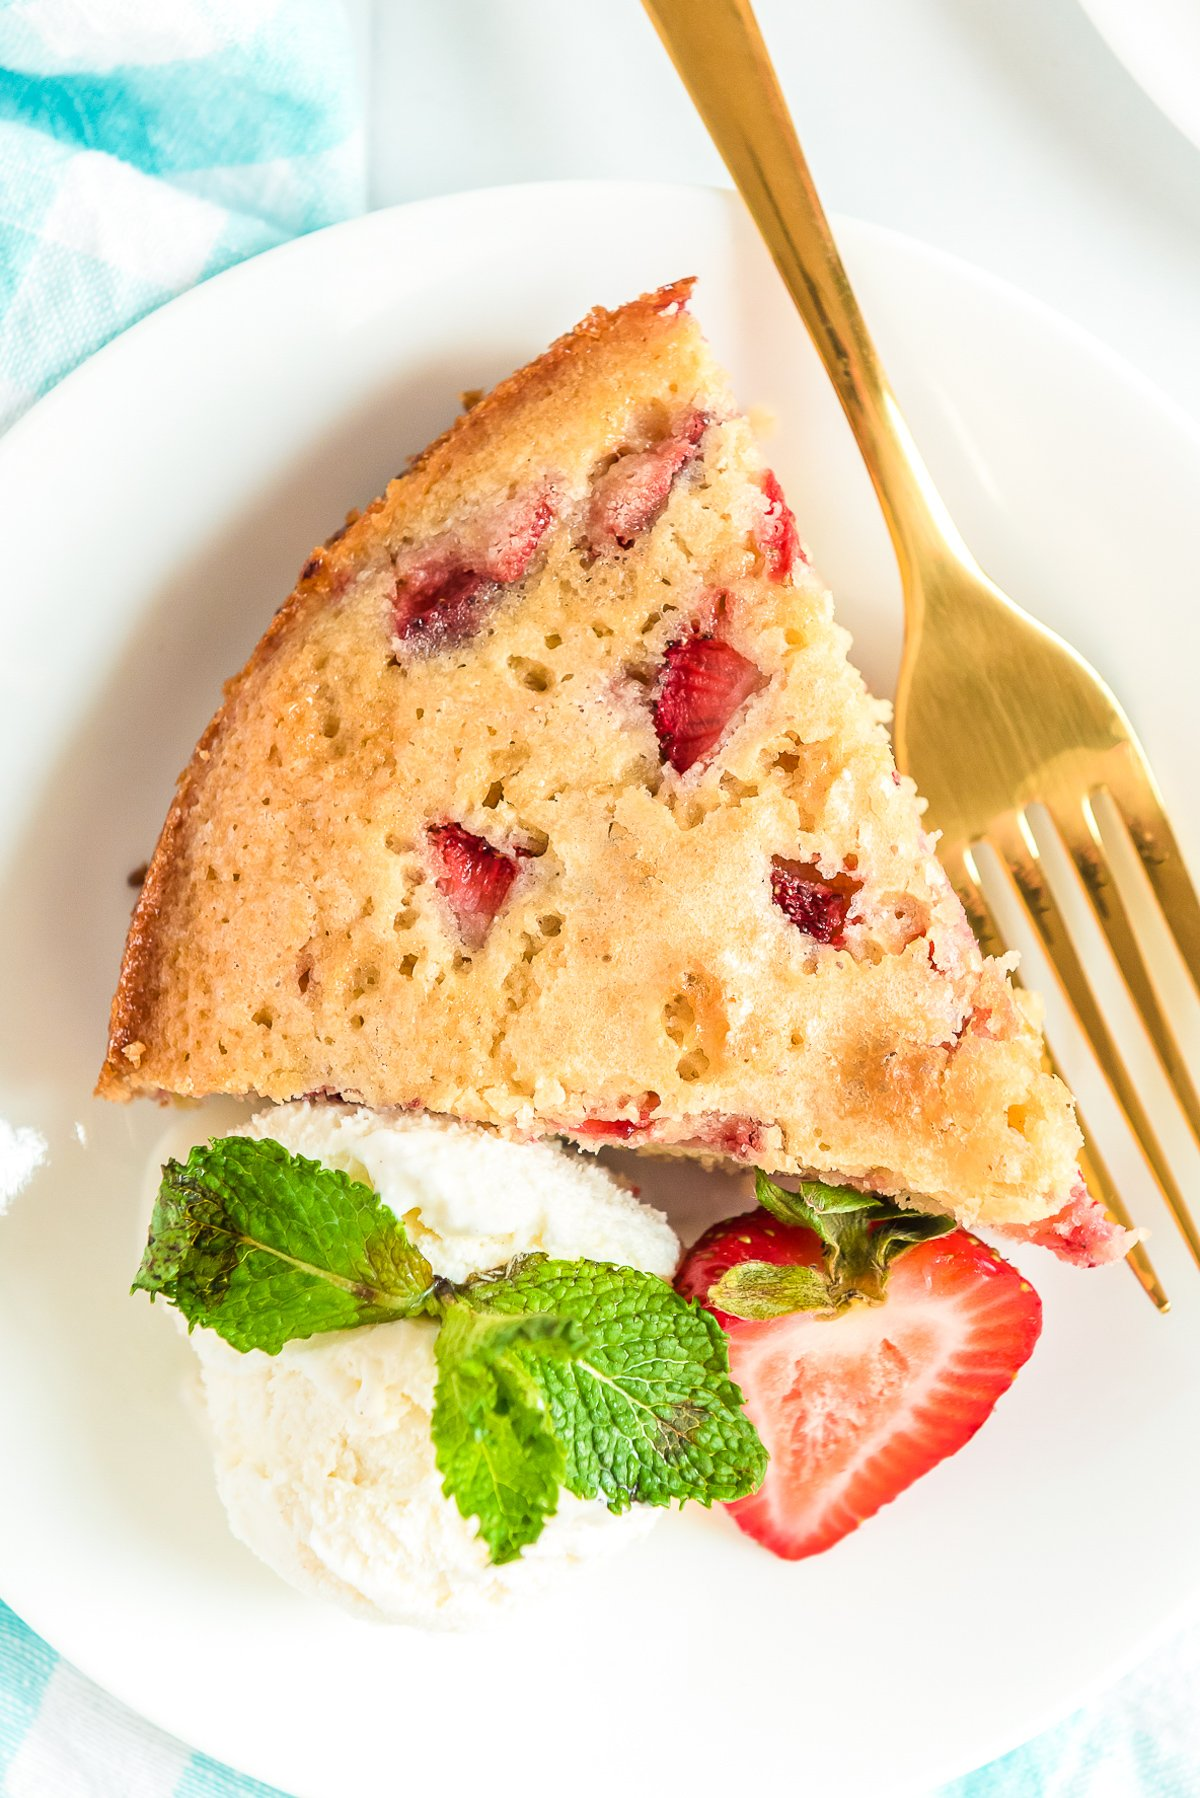 Overhead photo of a slice of strawberry cake on a white plate with whipped cream and gold fork.